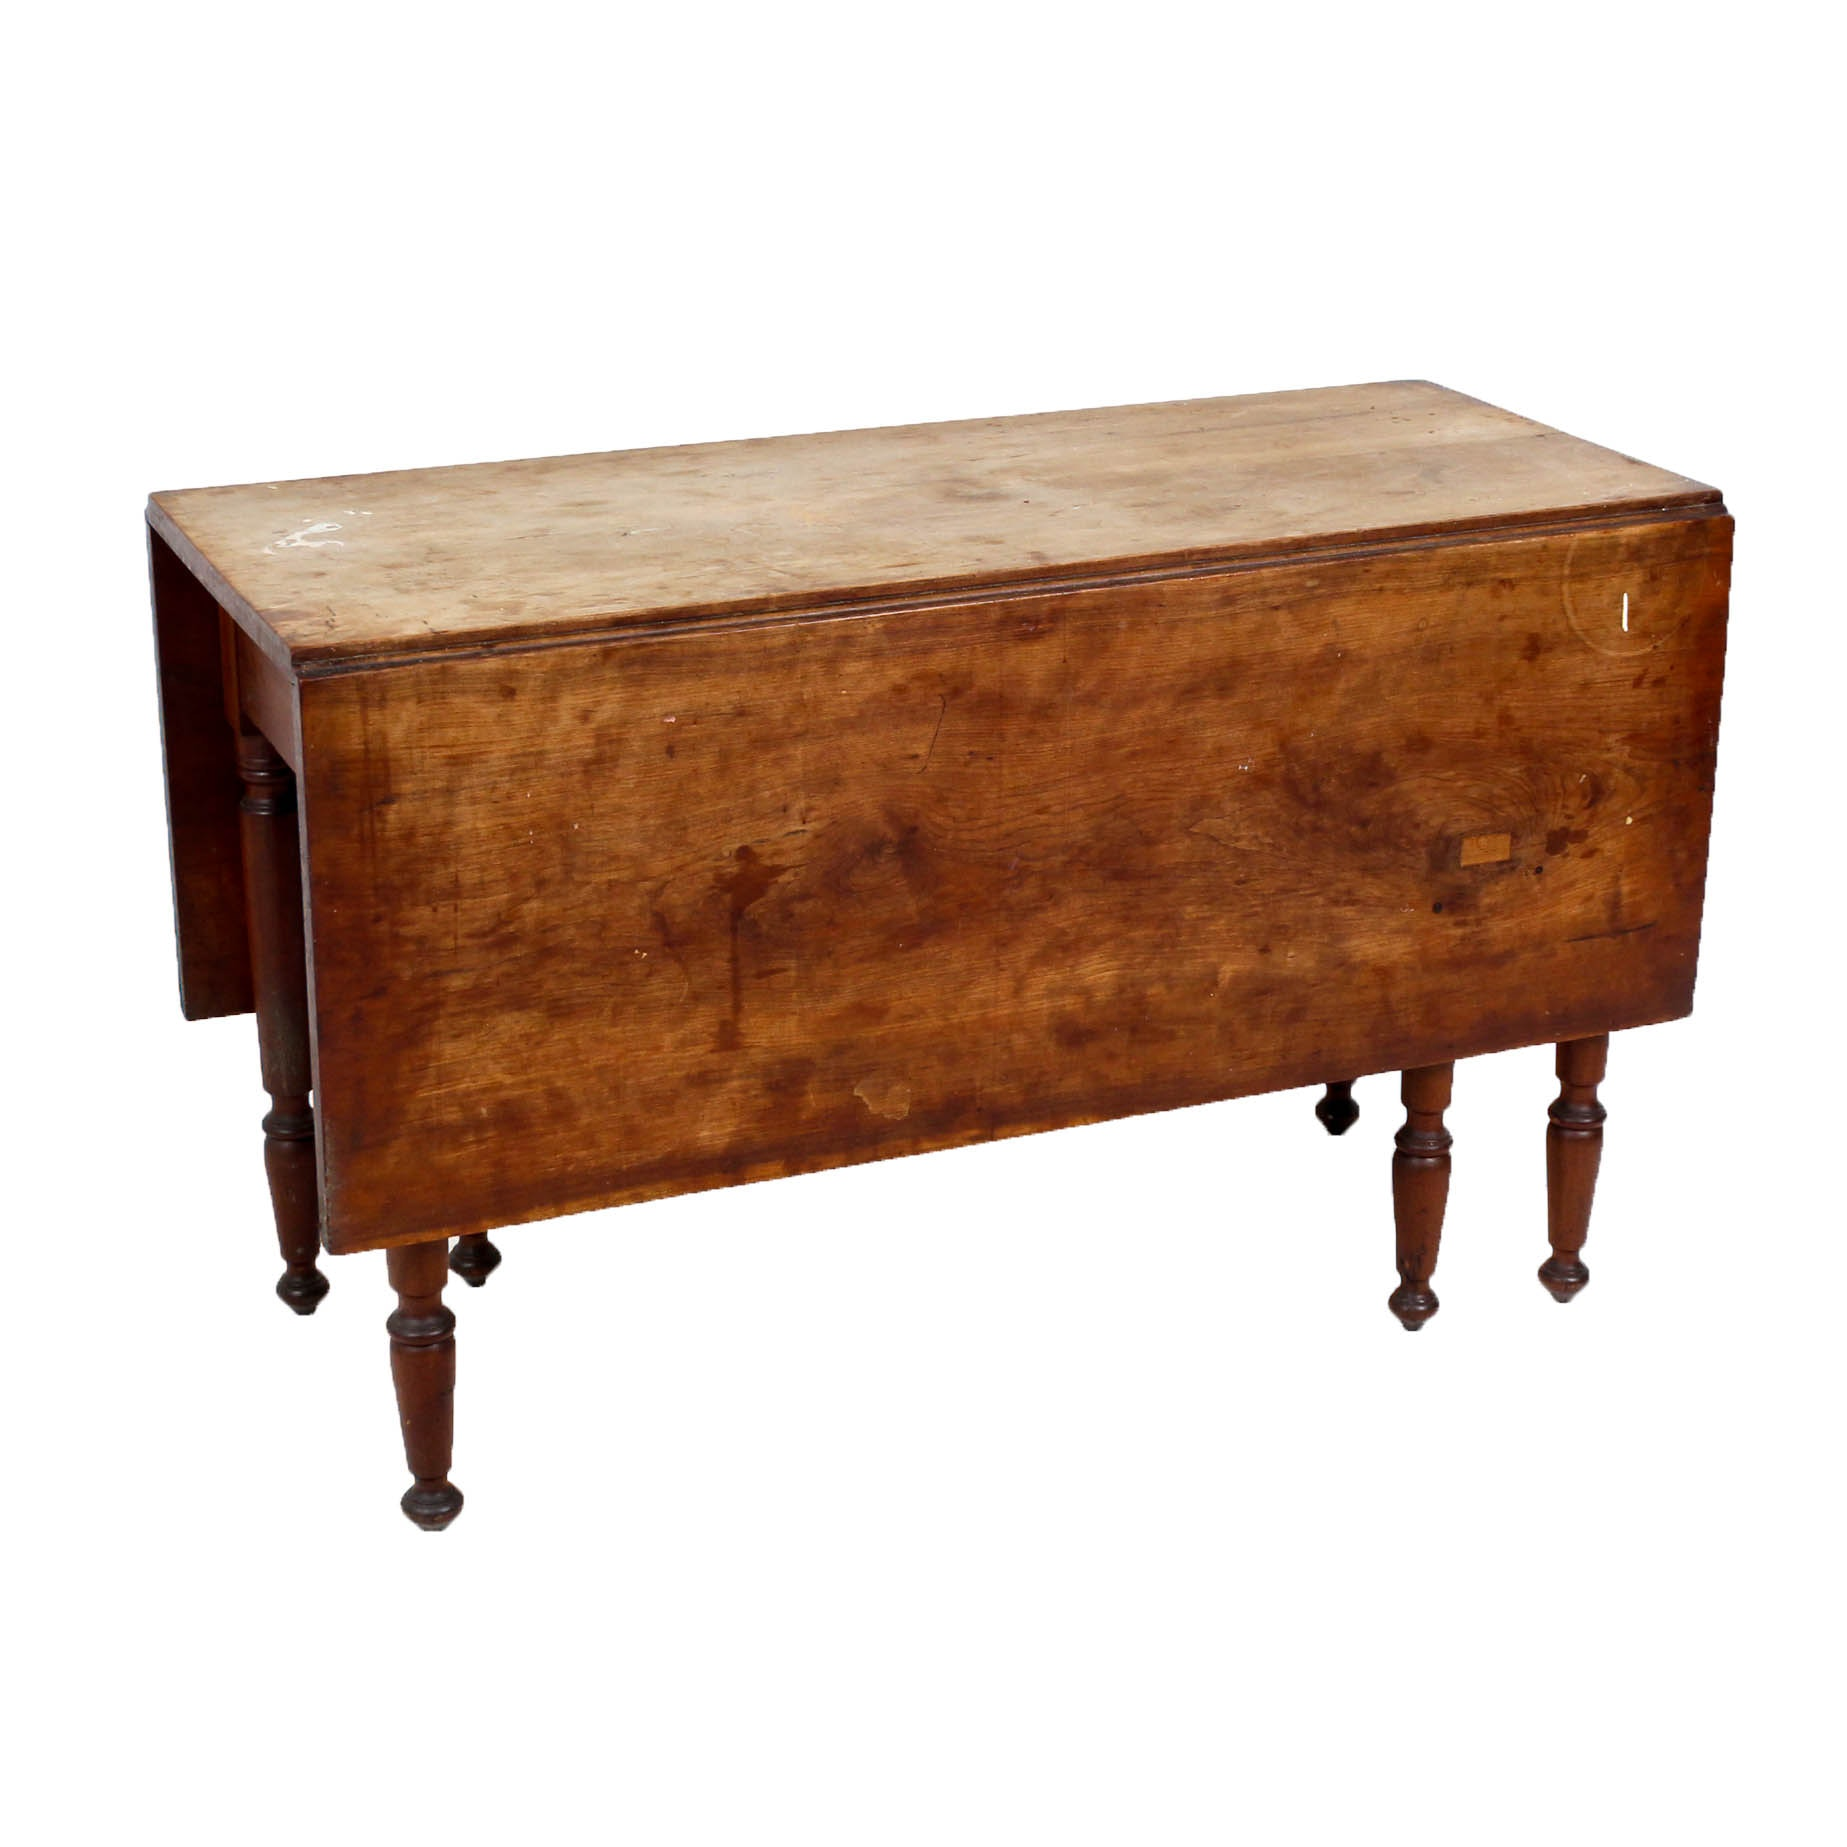 Federal Style Walnut Drop Leaf Dining Table, Mid to Late 19th Century